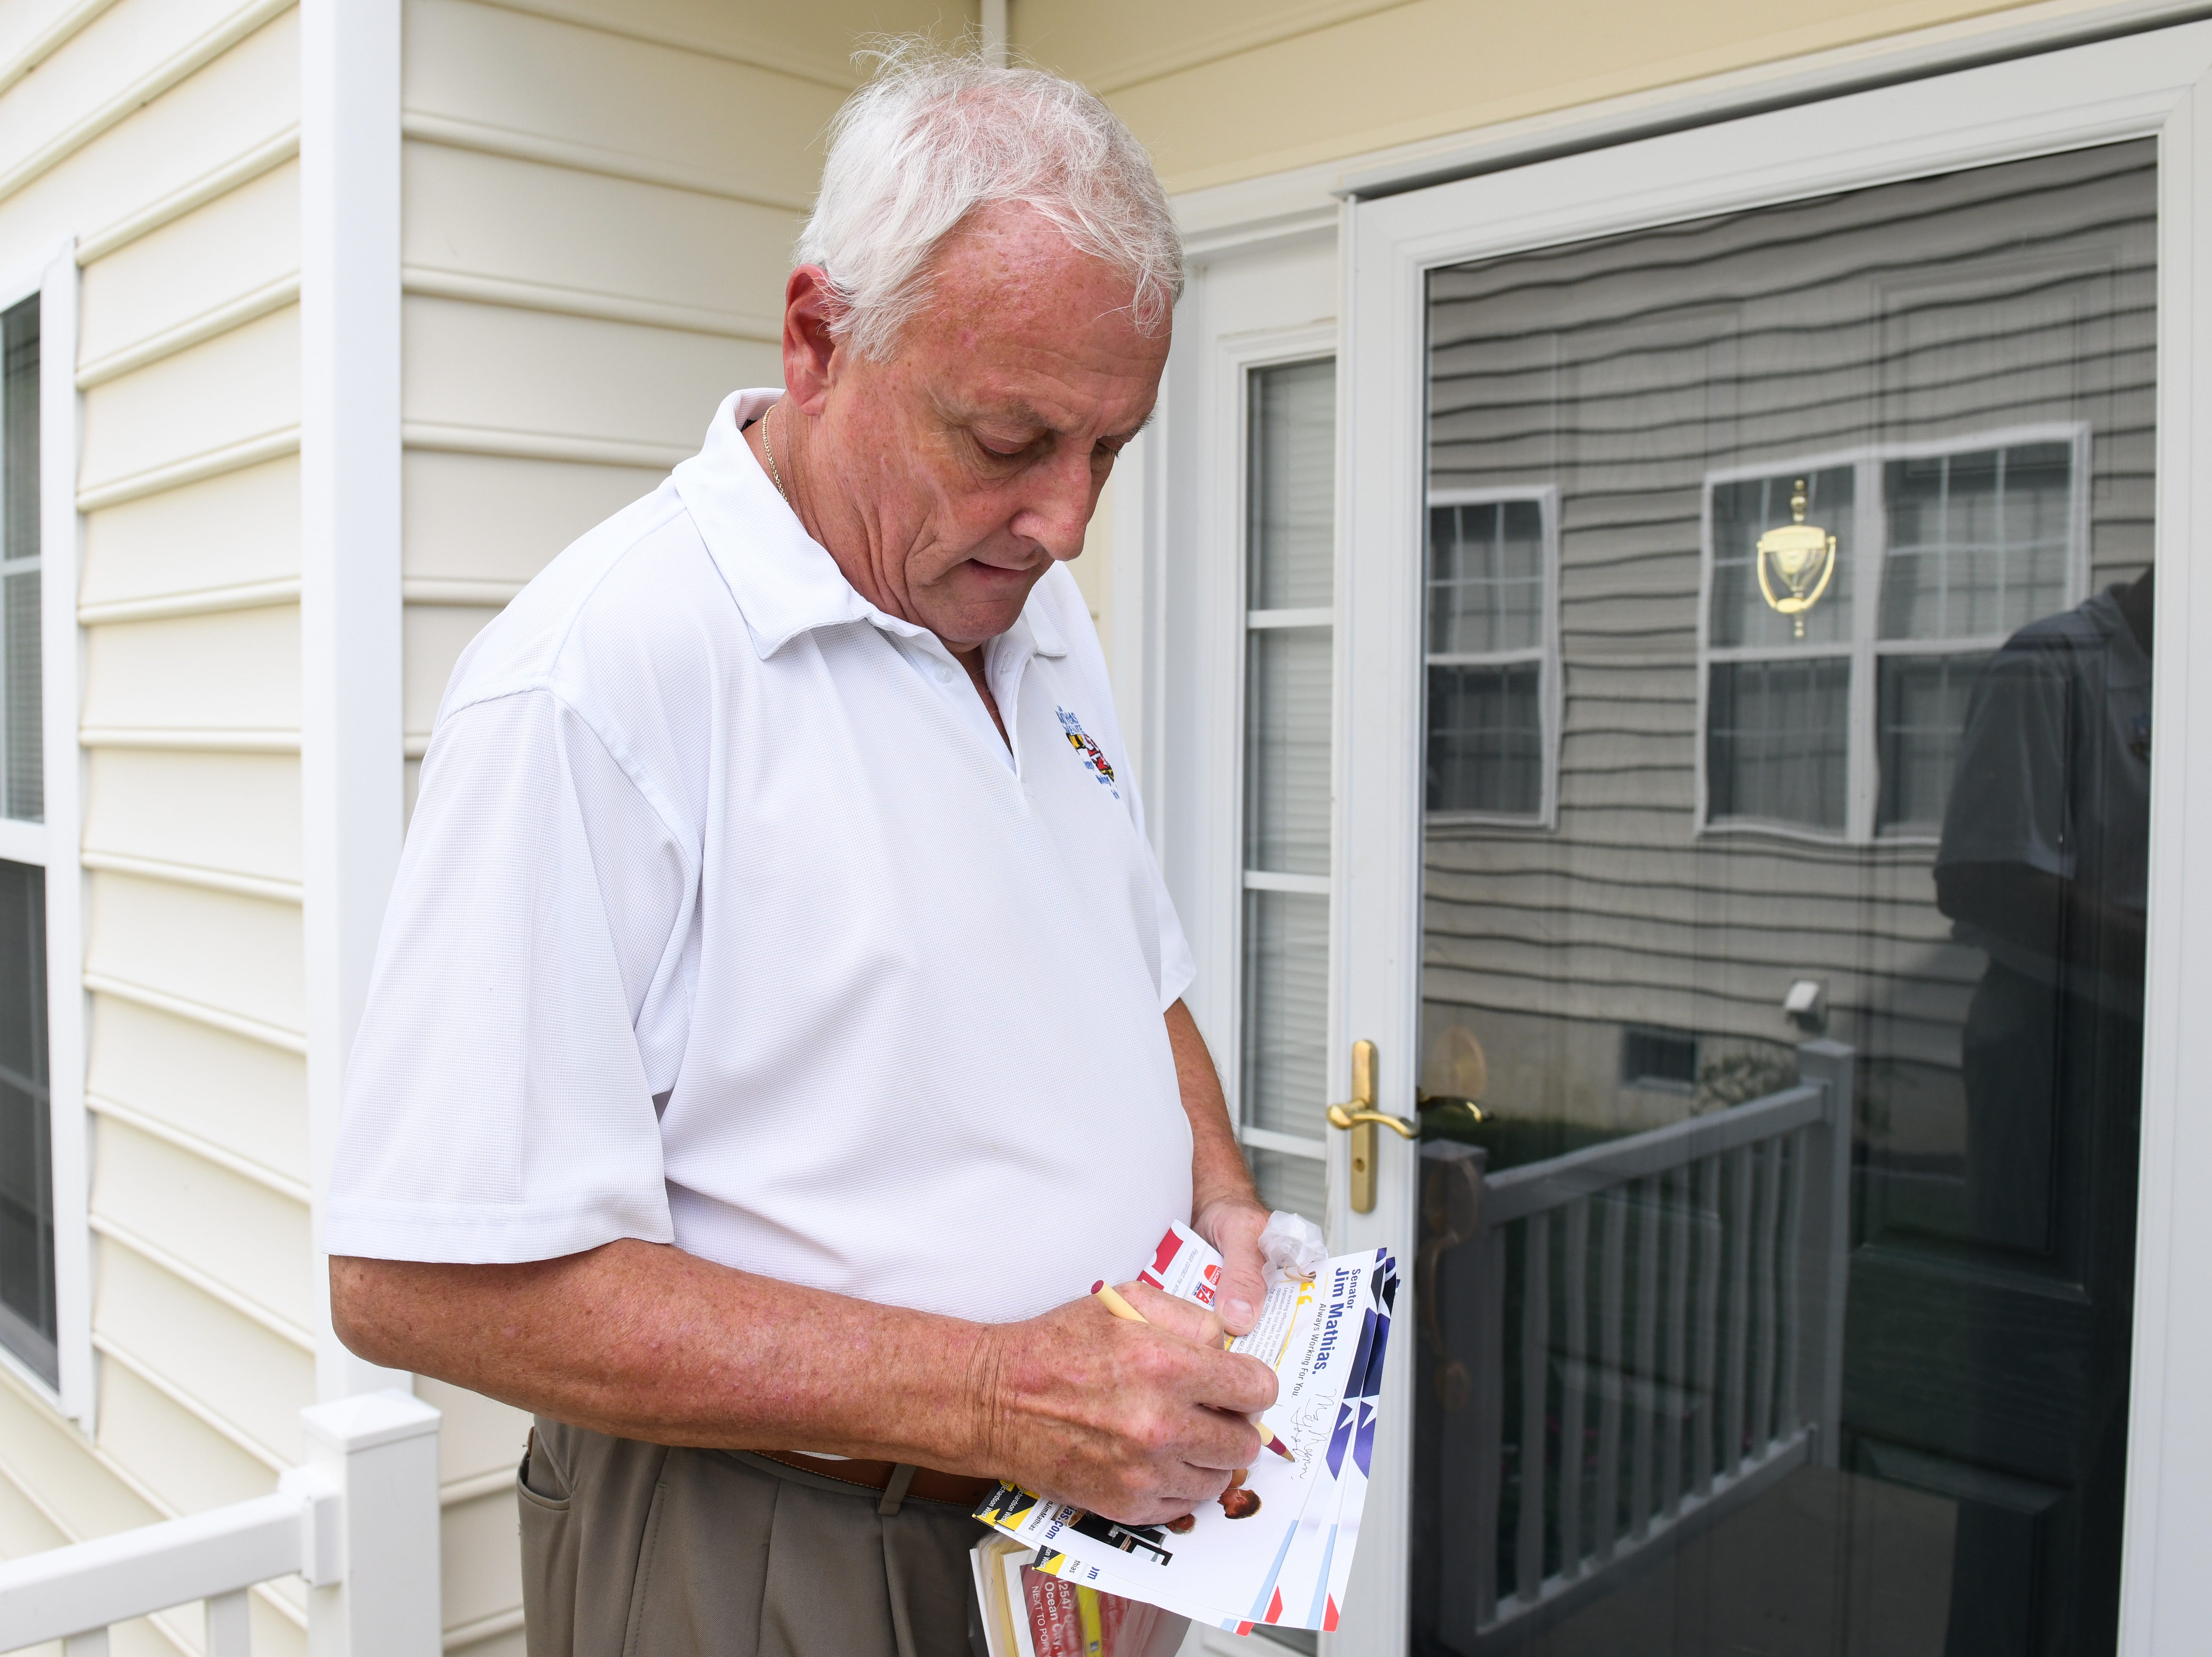 Sen. Jim Mathias, Democratic incumbent candidate for Maryland State Senate in District 38, leaves a note for a voter in Ocean Pines while campaigning on Tuesday, Oct 2, 2018.